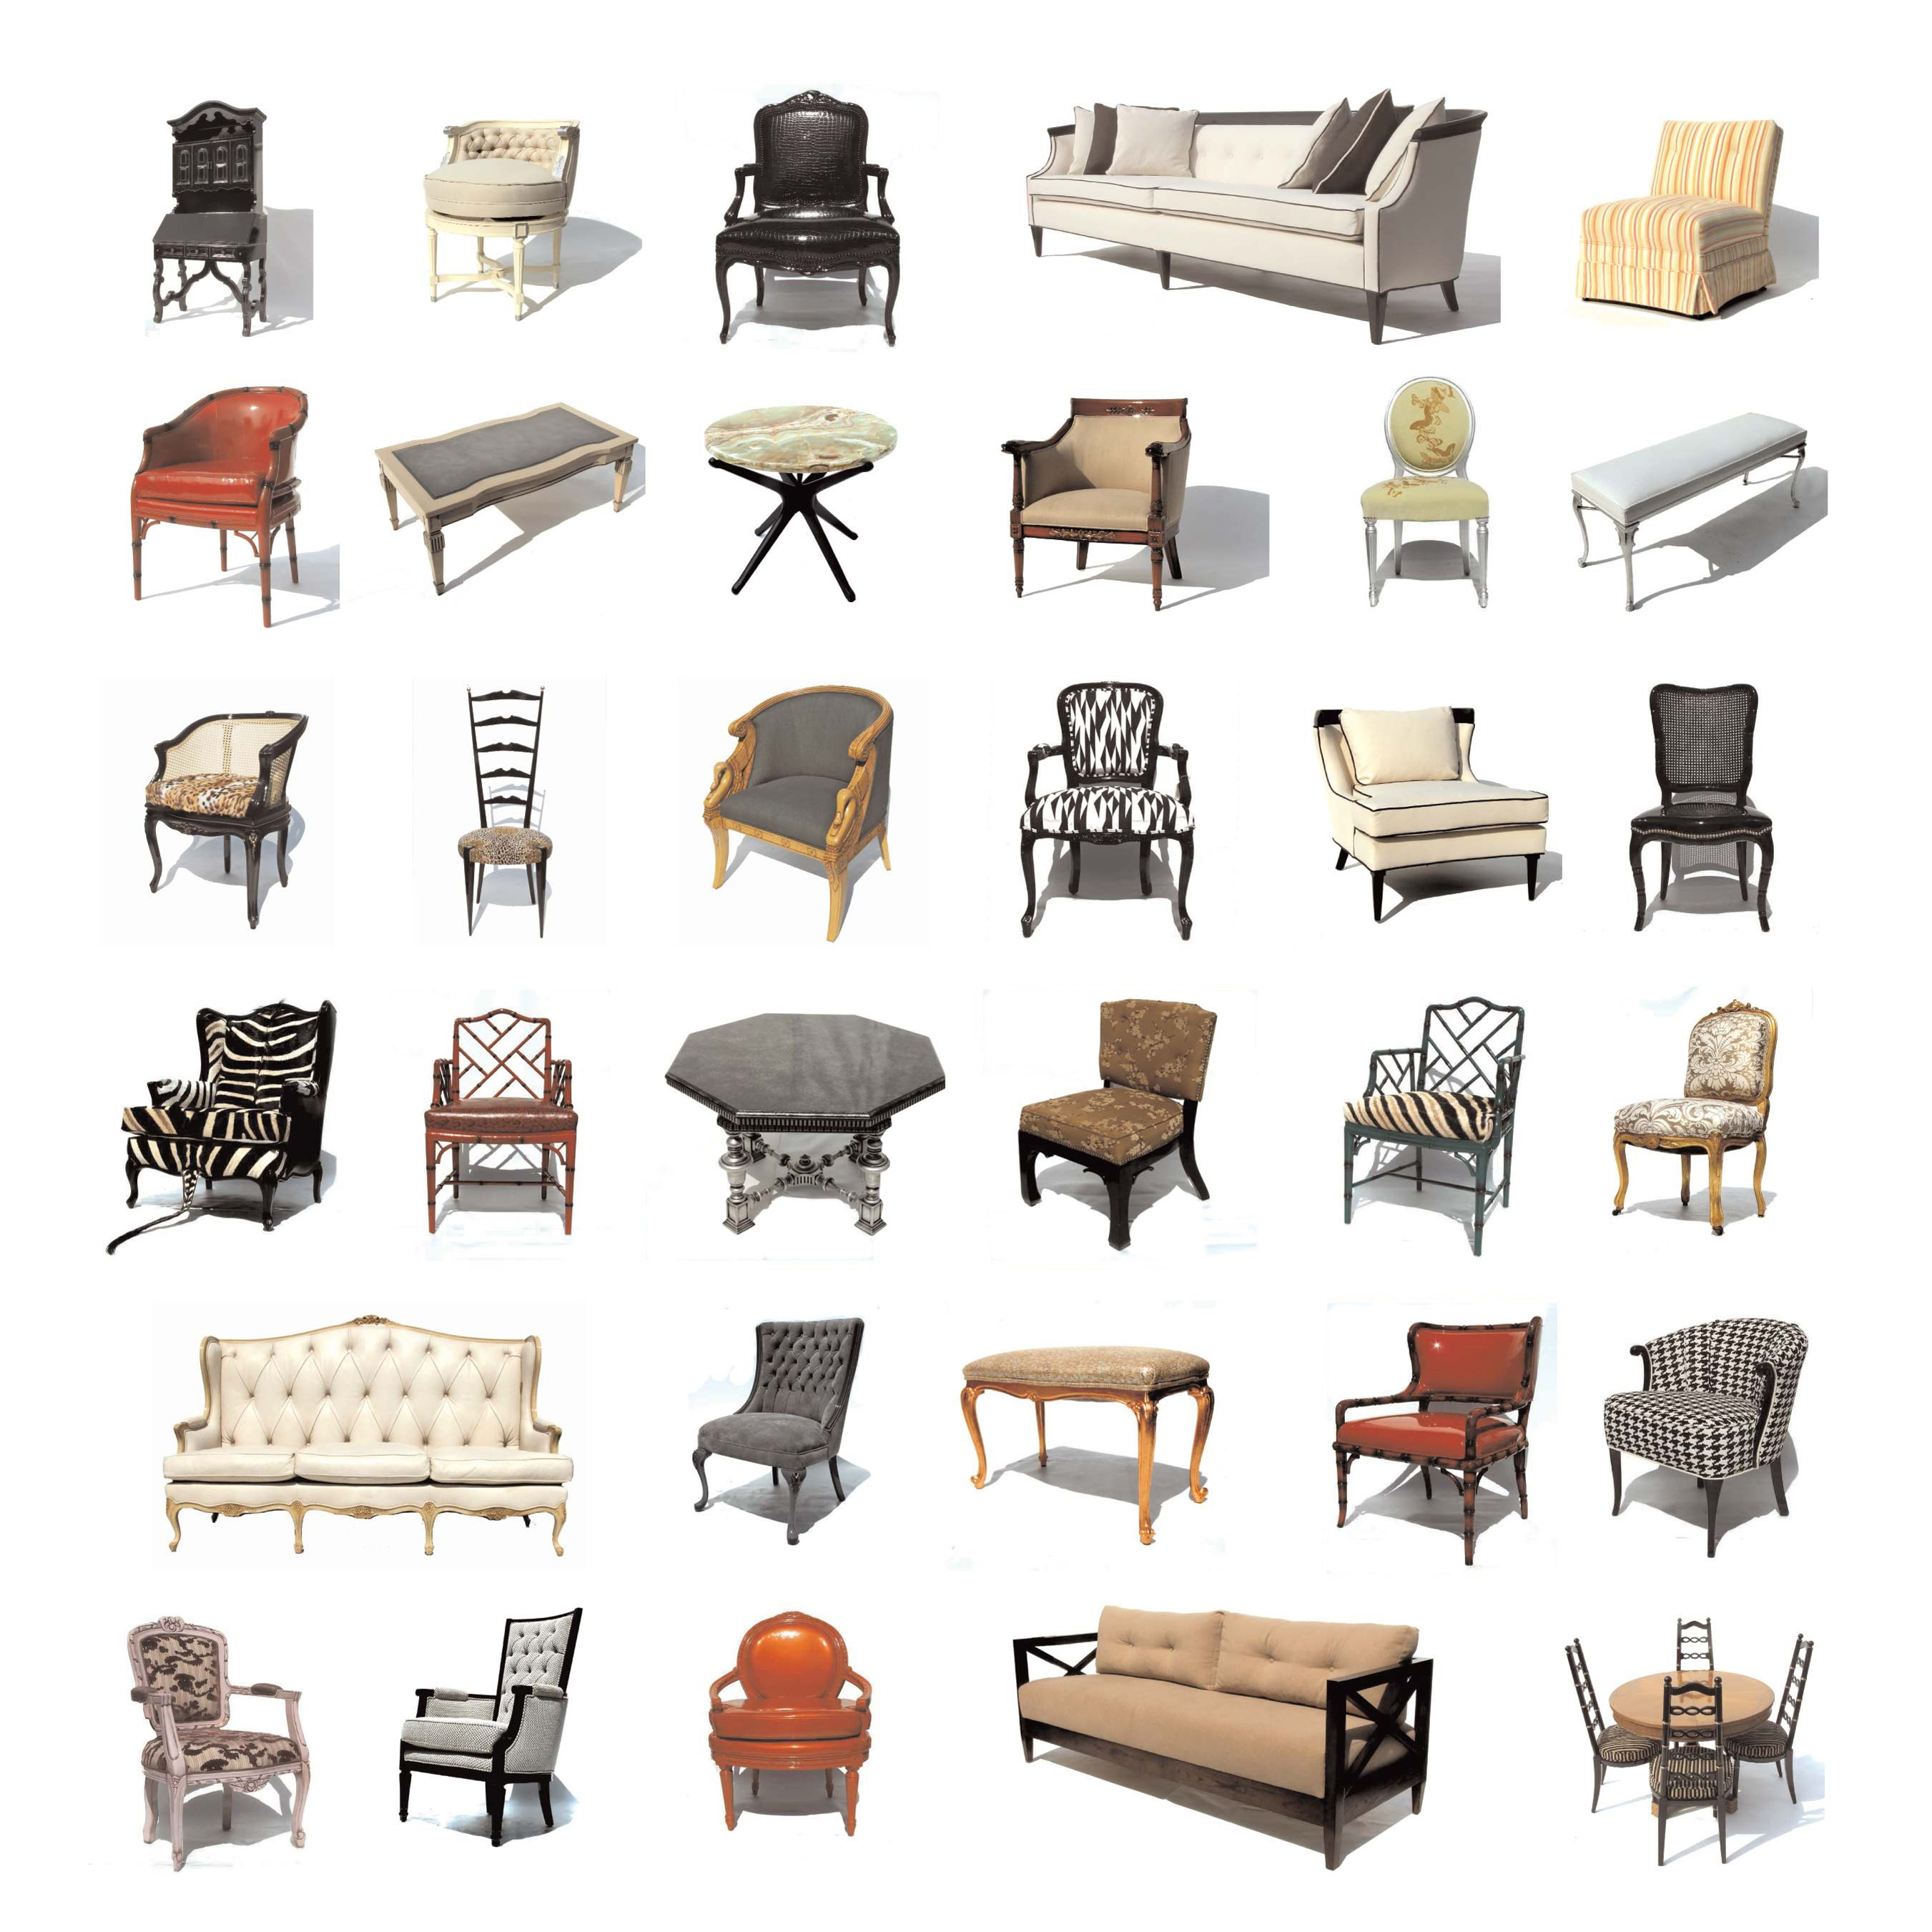 Furniture Styles From The 1930 S 1950 S Furniture Styles